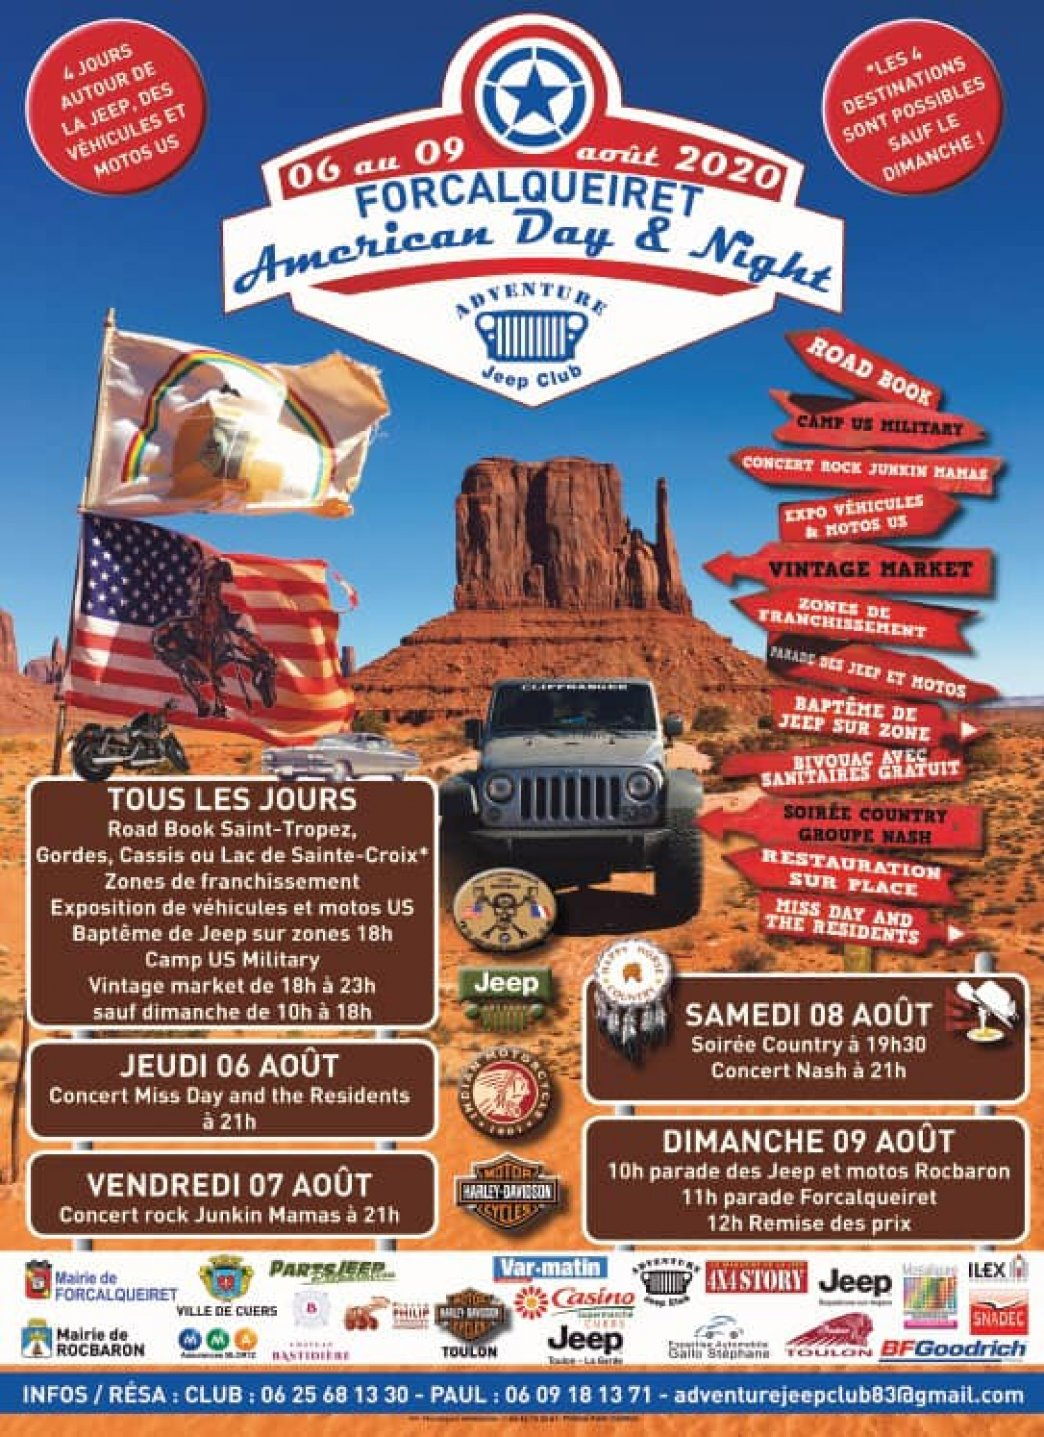 American Day & Night 2020 pour les jeepers